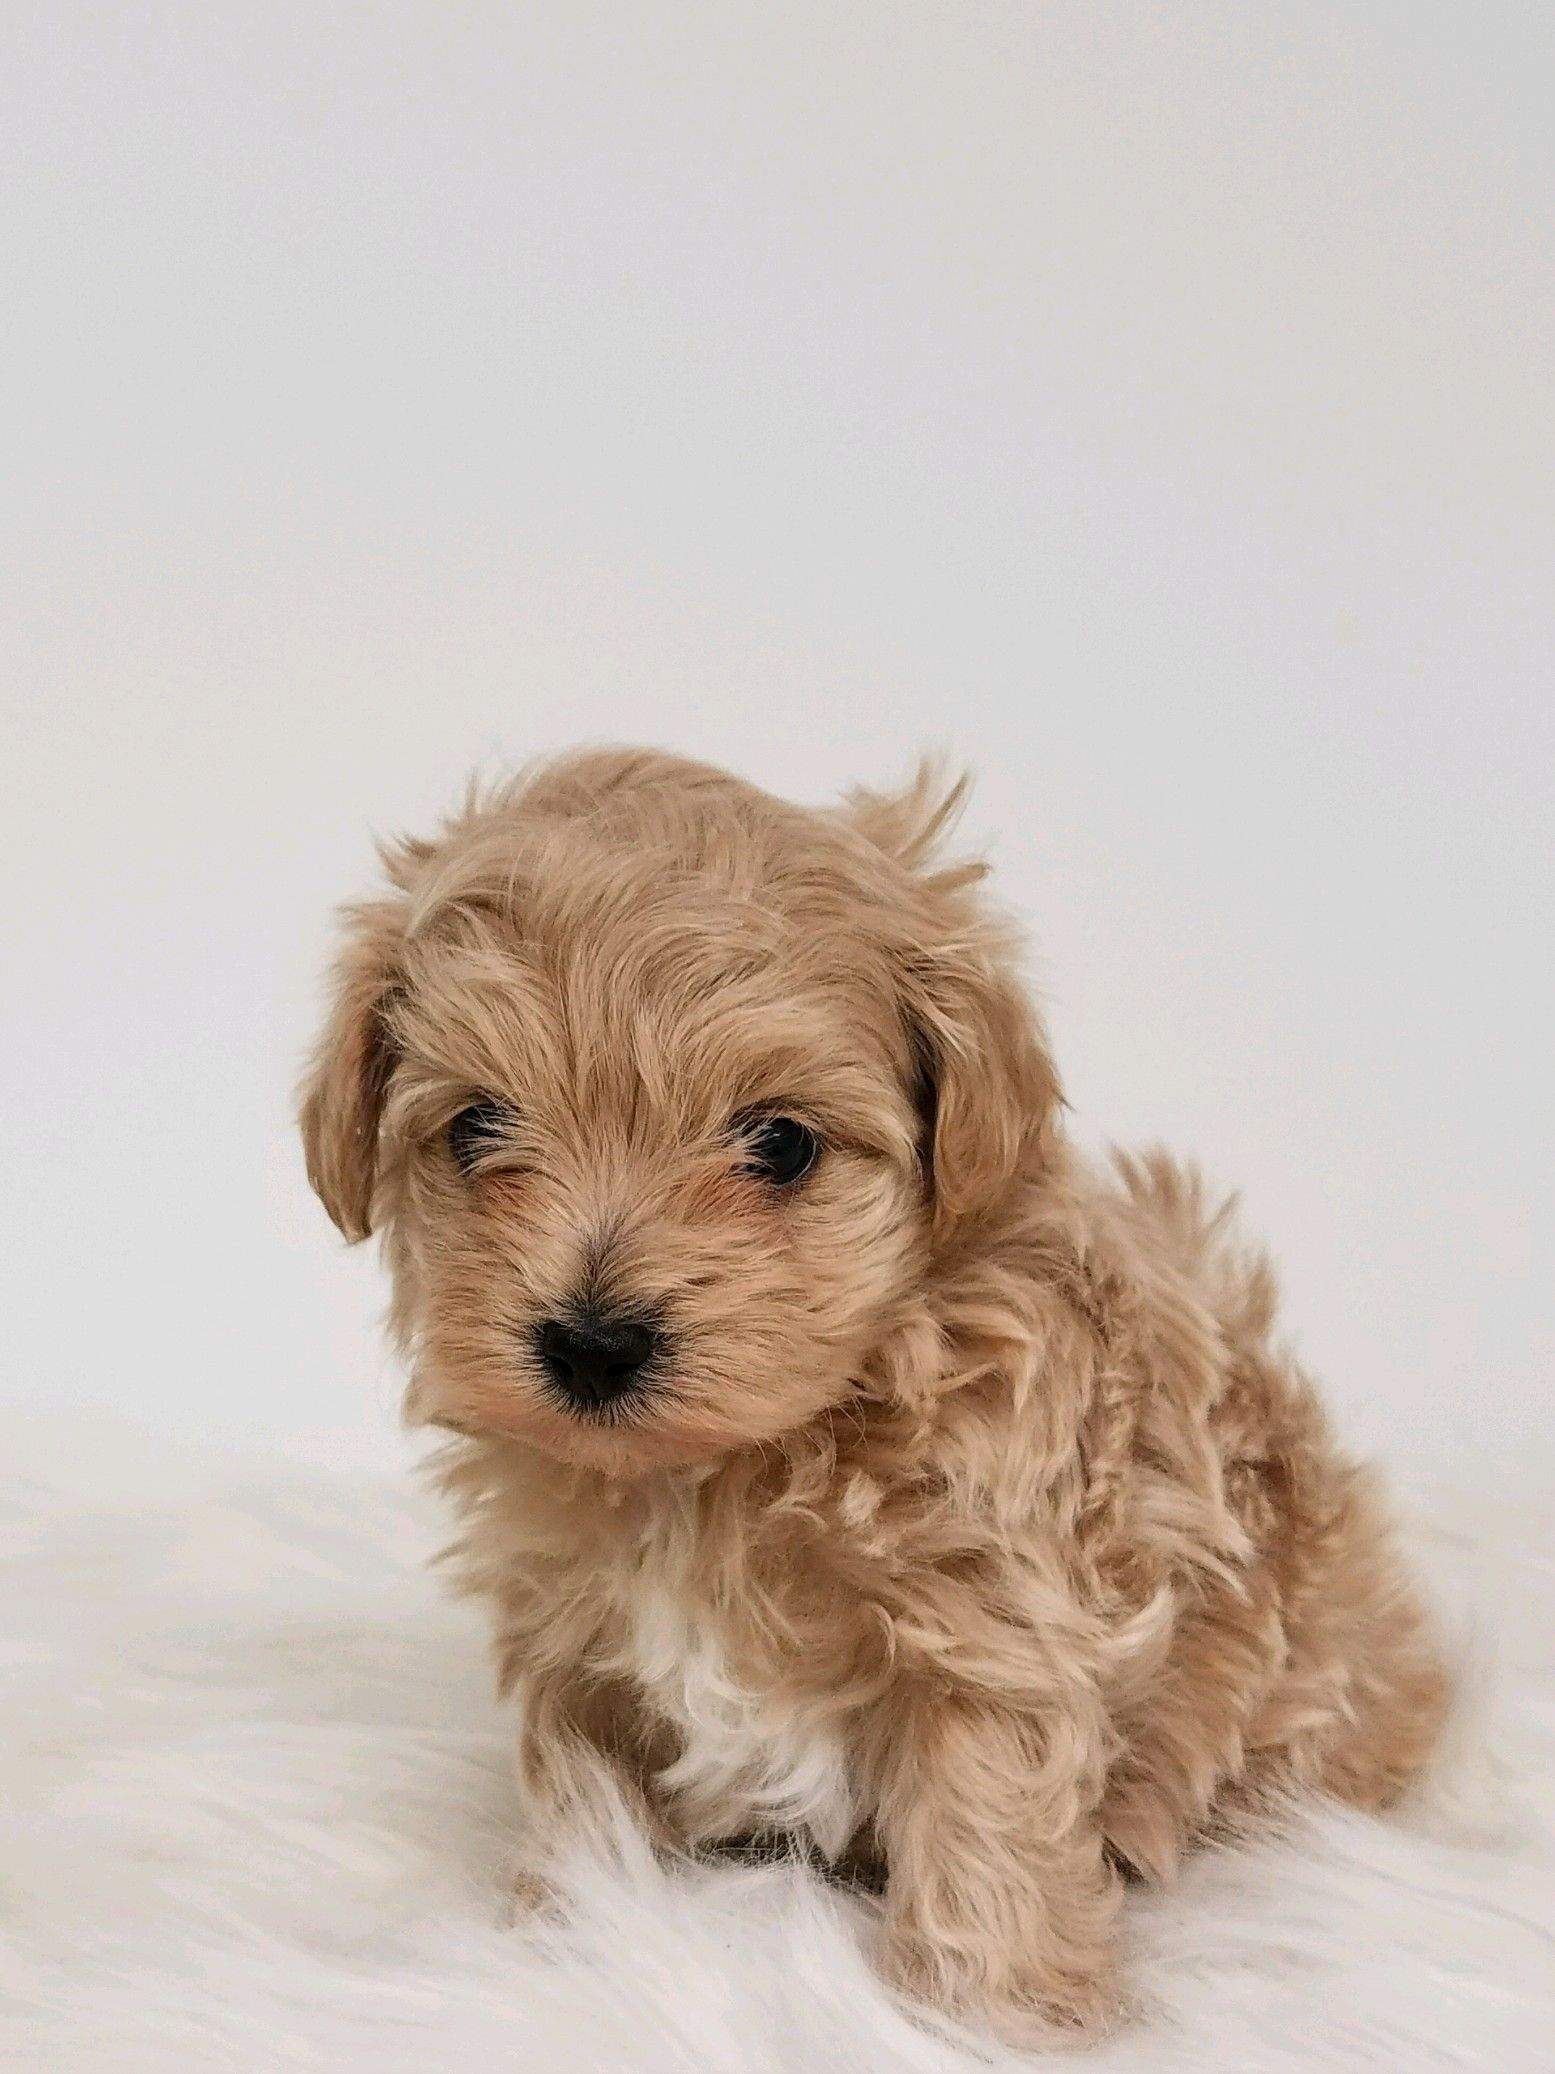 Designer And Mix Puppies Morkies Maltipoos Red Maltipoos Yorkshire Terrier Shih Tzu Havanese Toy And Teac Maltipoo Dog Maltipoo Puppy Yorkie Poo Puppies